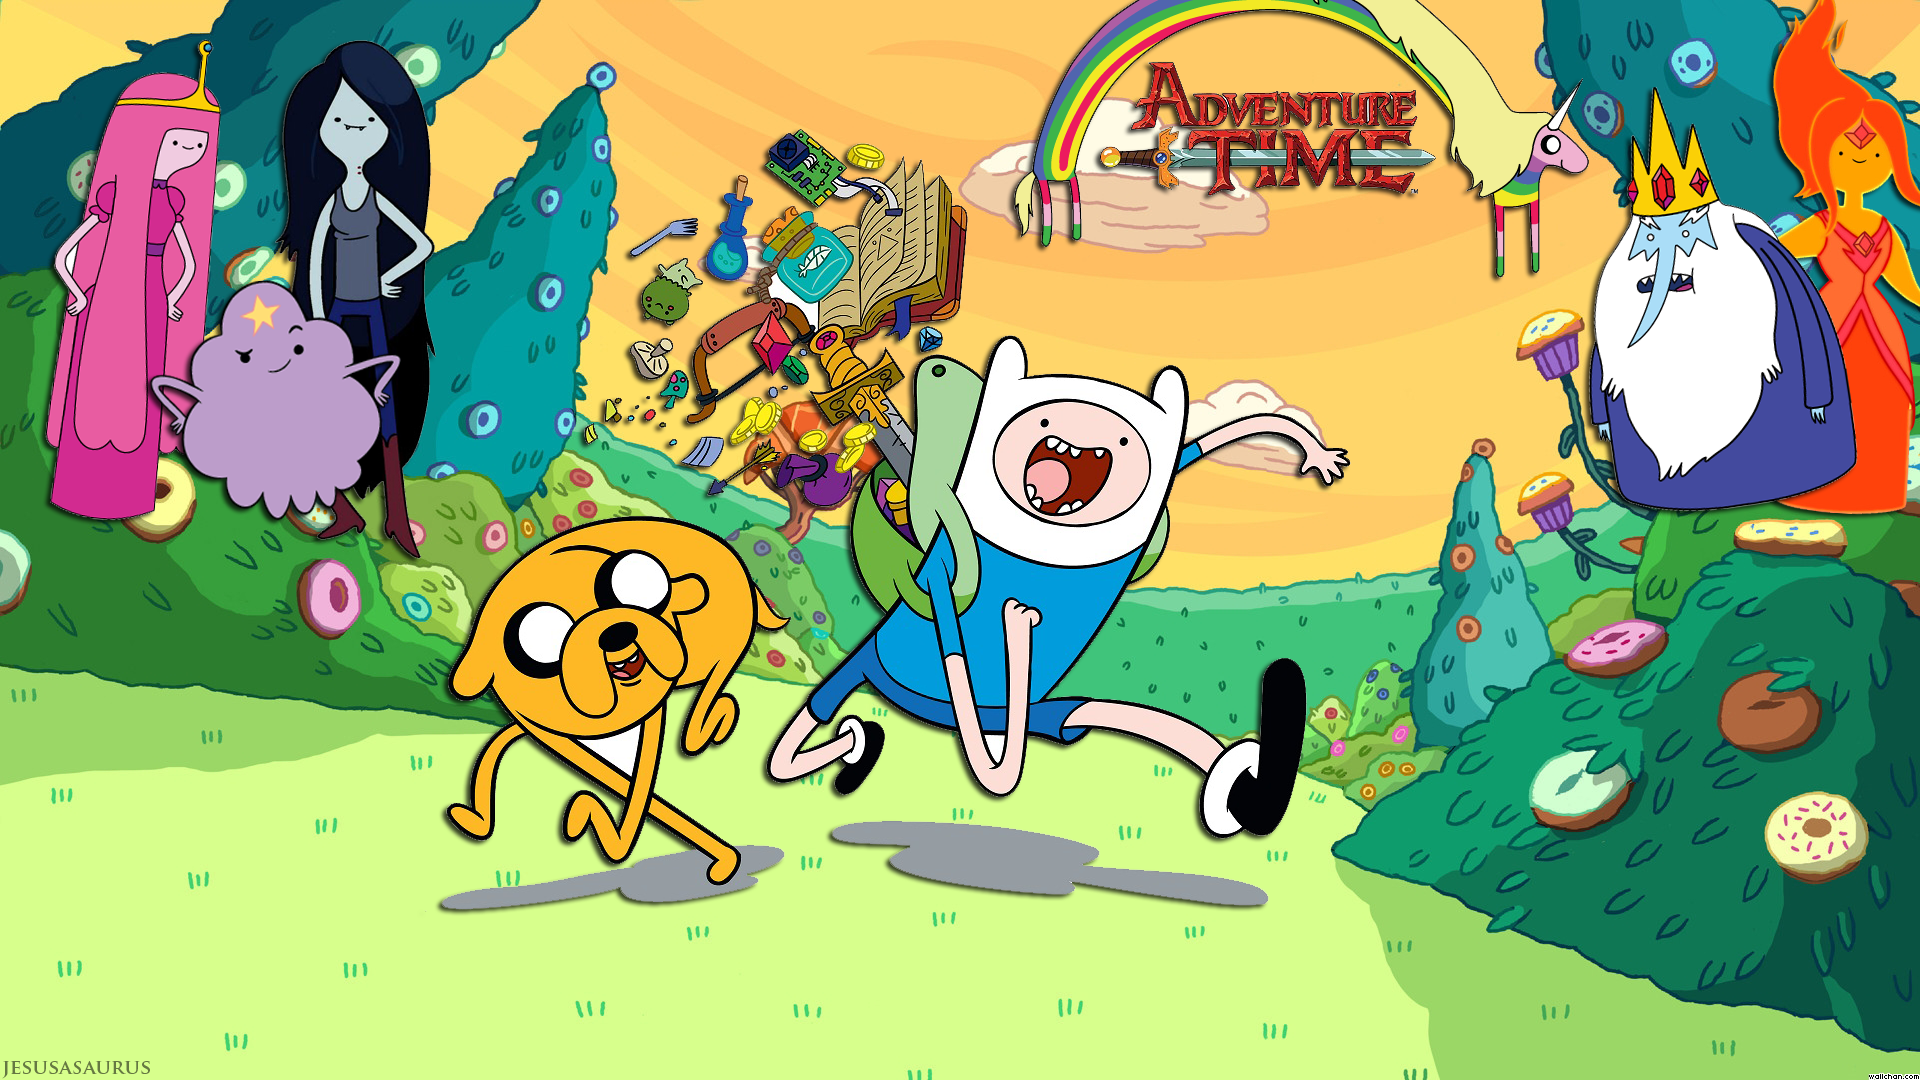 Adventure Time News Gaze Adventure Time Wallpaper Adventure Time Cartoon Adventure Time Movie